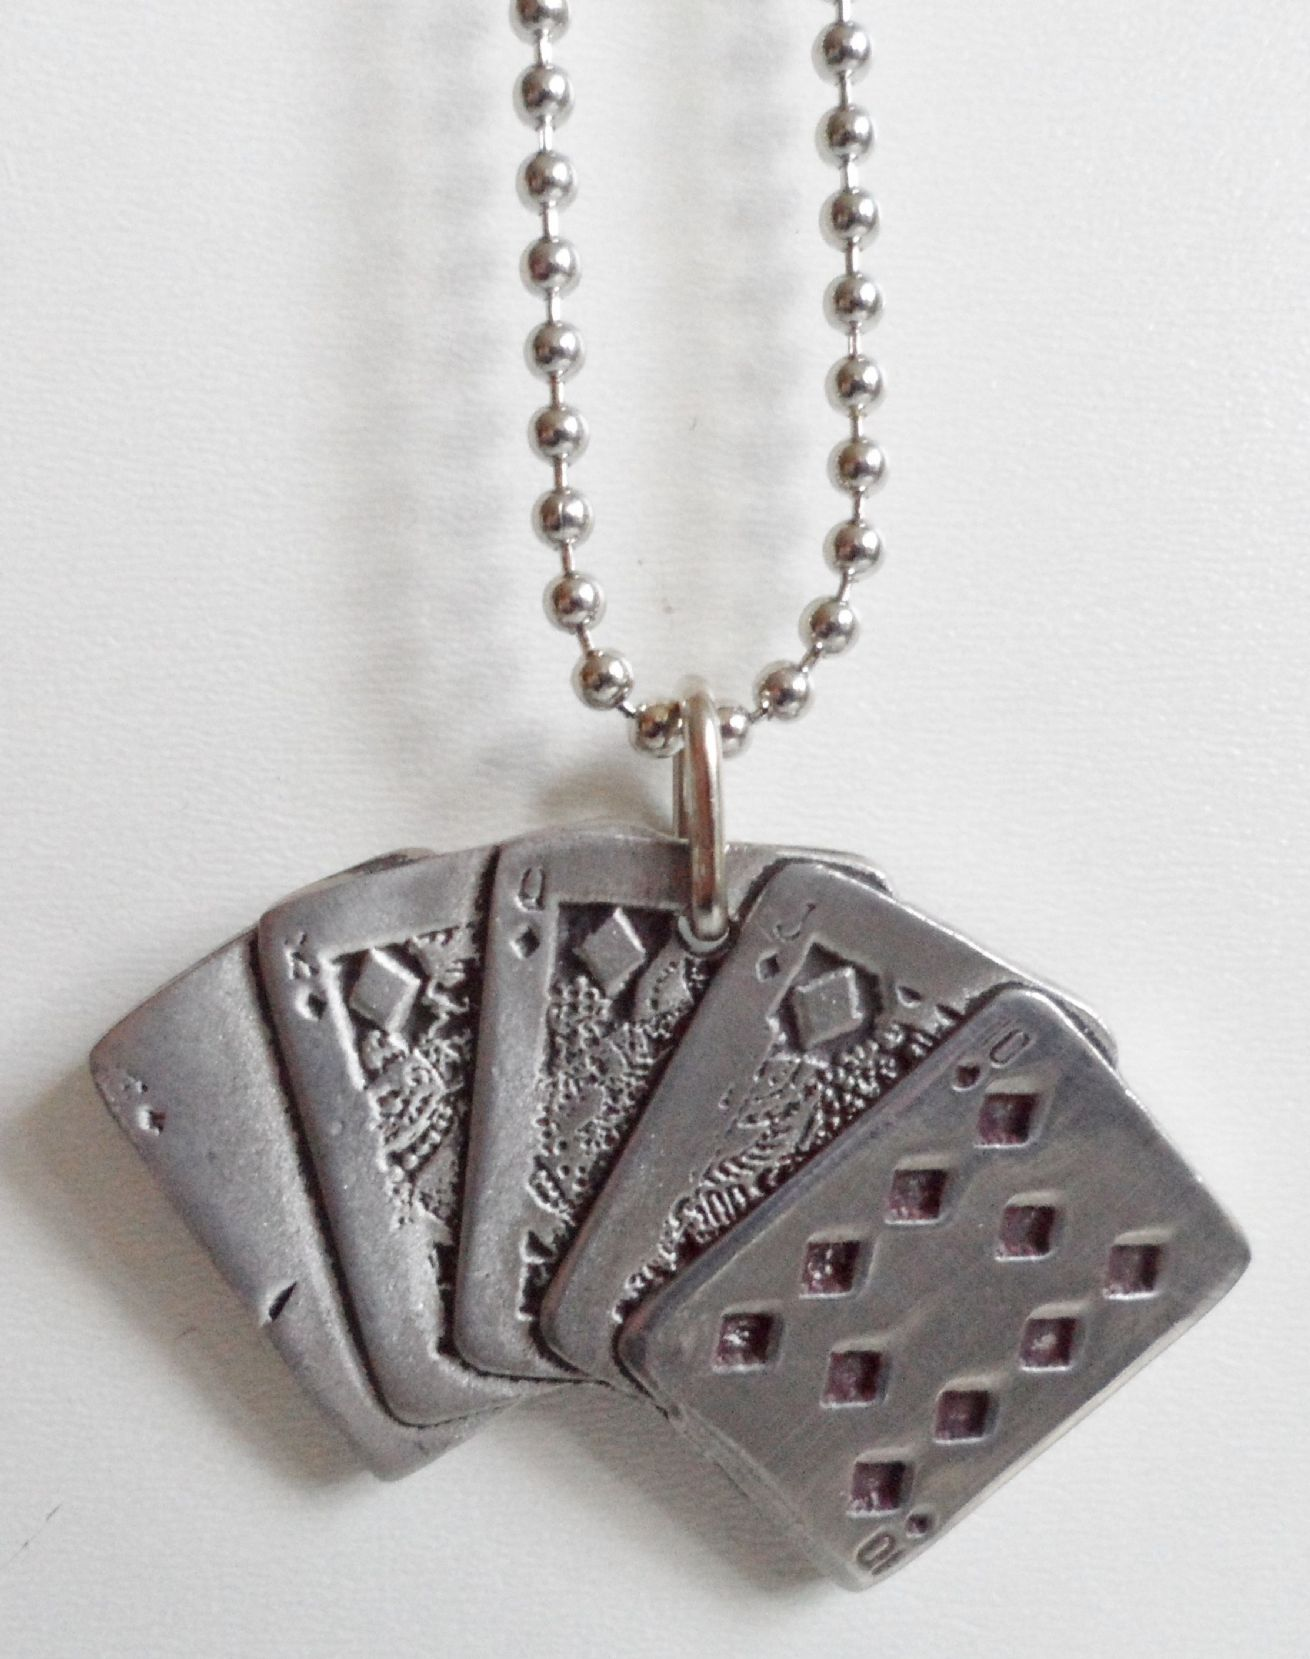 Pewter pendant necklace jewelry pinterest pewter pendant necklace aloadofball Image collections